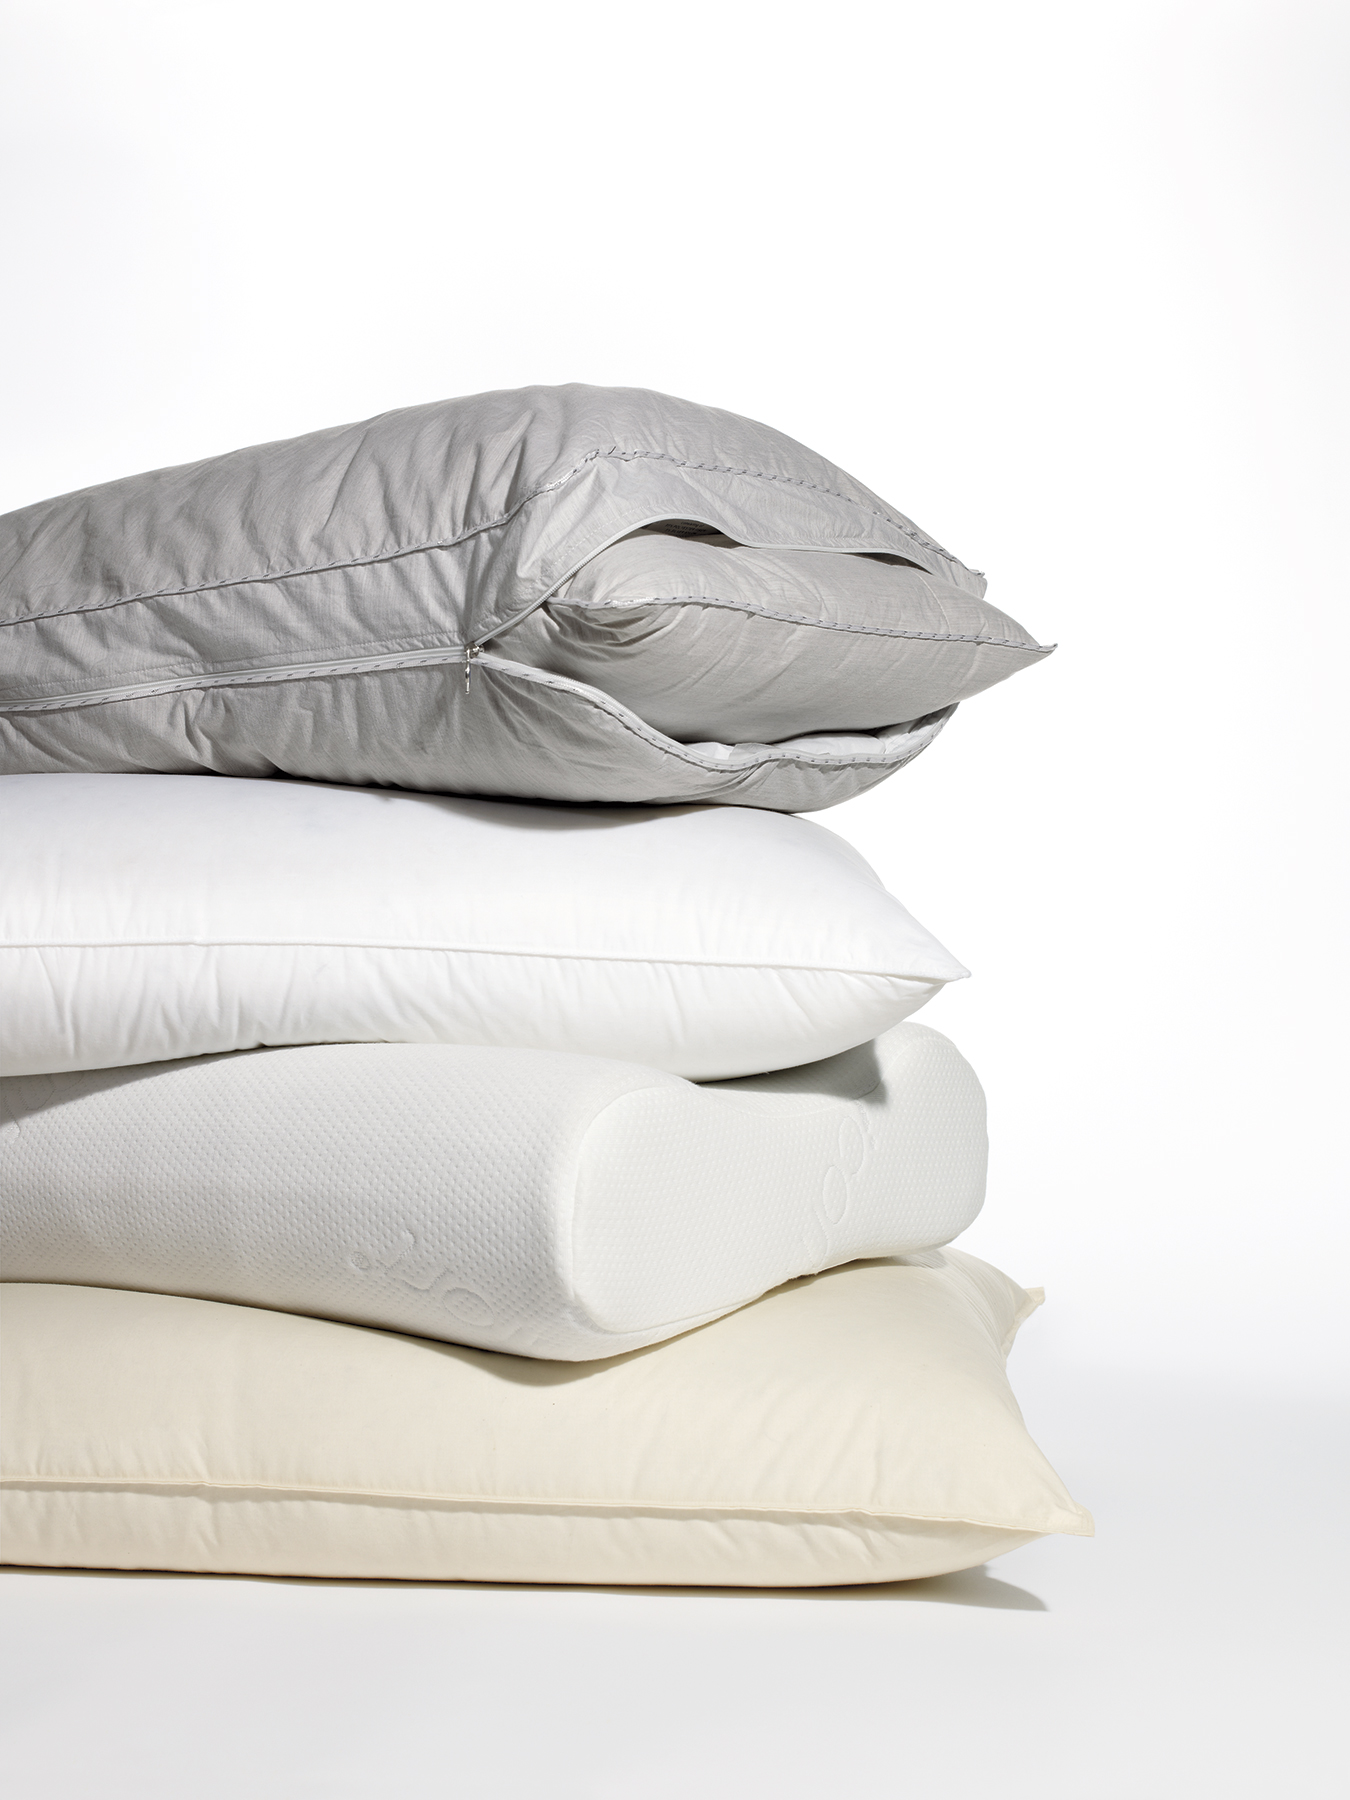 Stack of four pillows